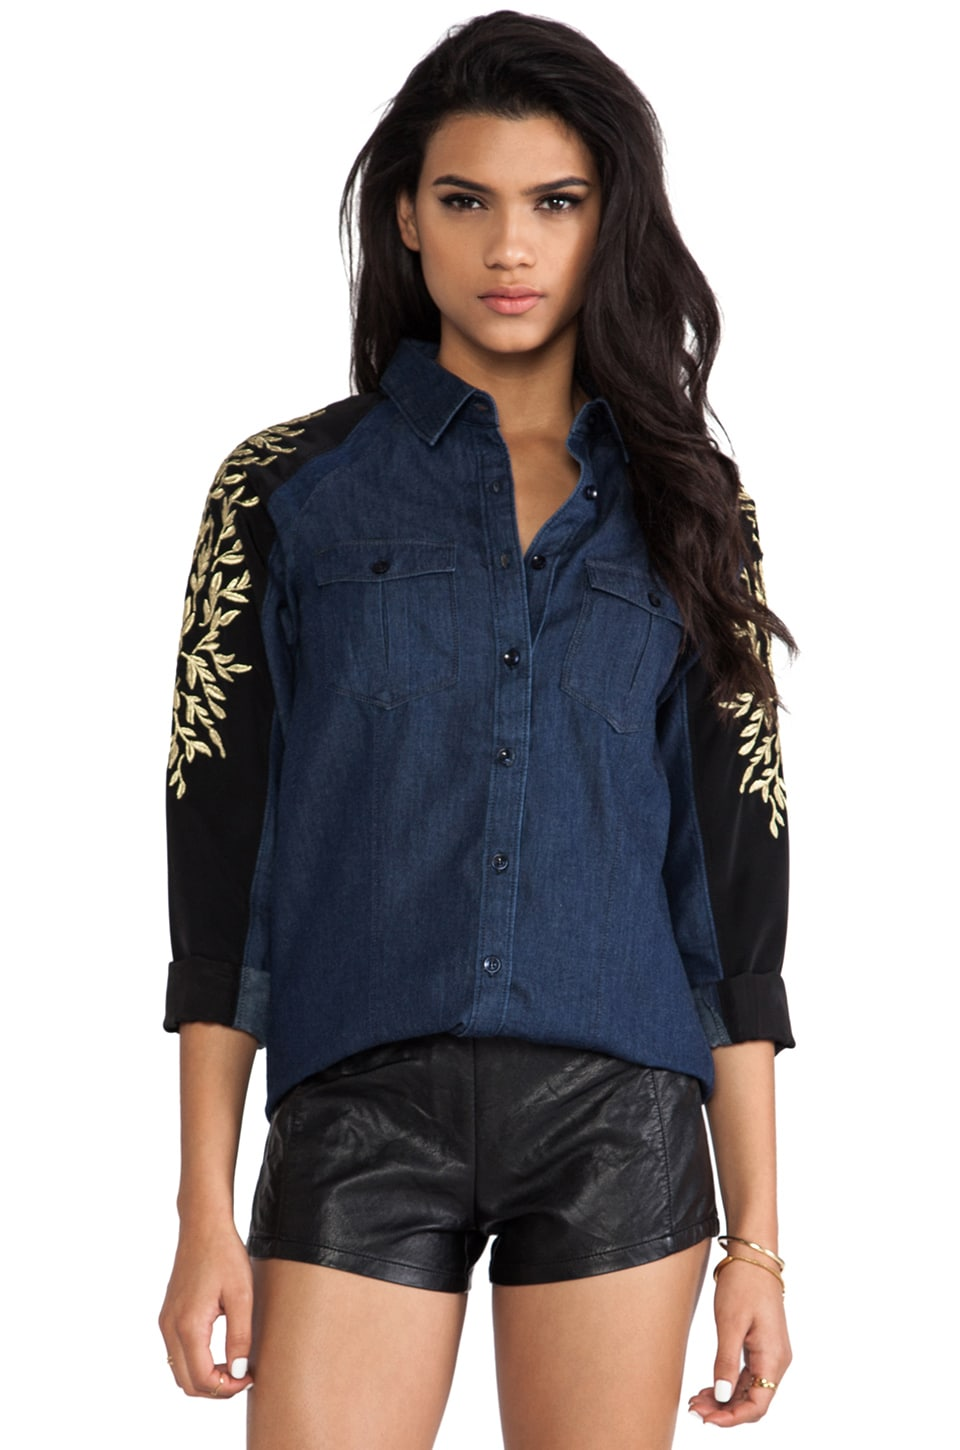 C/MEO Million Dollar Man Shirt in Denim